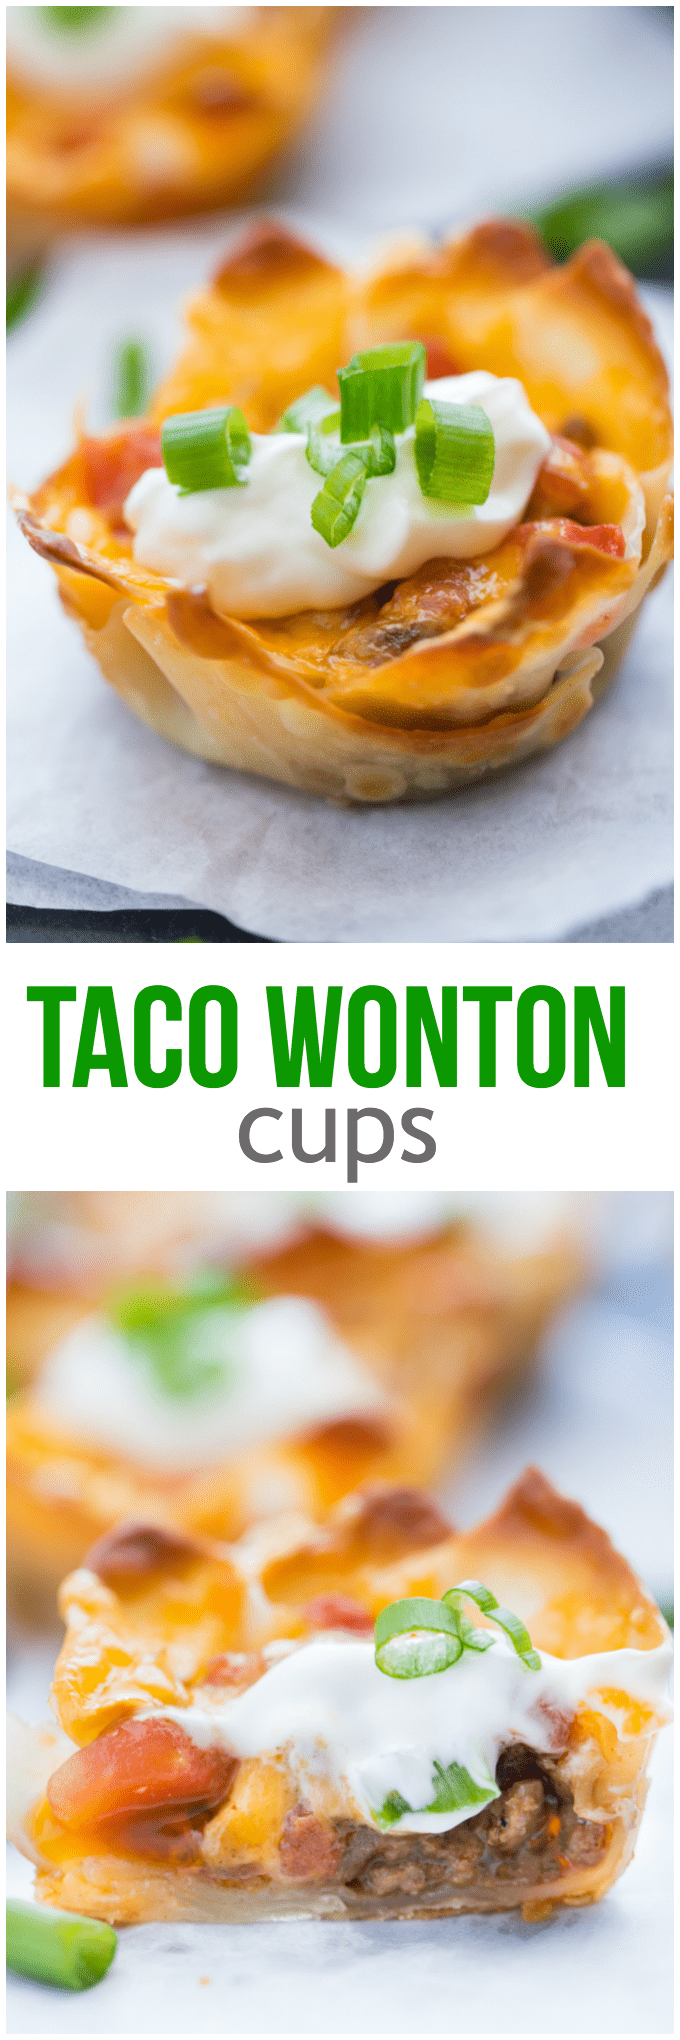 Taco Wonton CupsTaco Wonton Cups - Make this yummy appetizer in a muffin tin with wonton wrappers! Top the seasoned taco beef with your favourite fresh toppings and melted cheese and watch these crispy treats disappear in a flash.